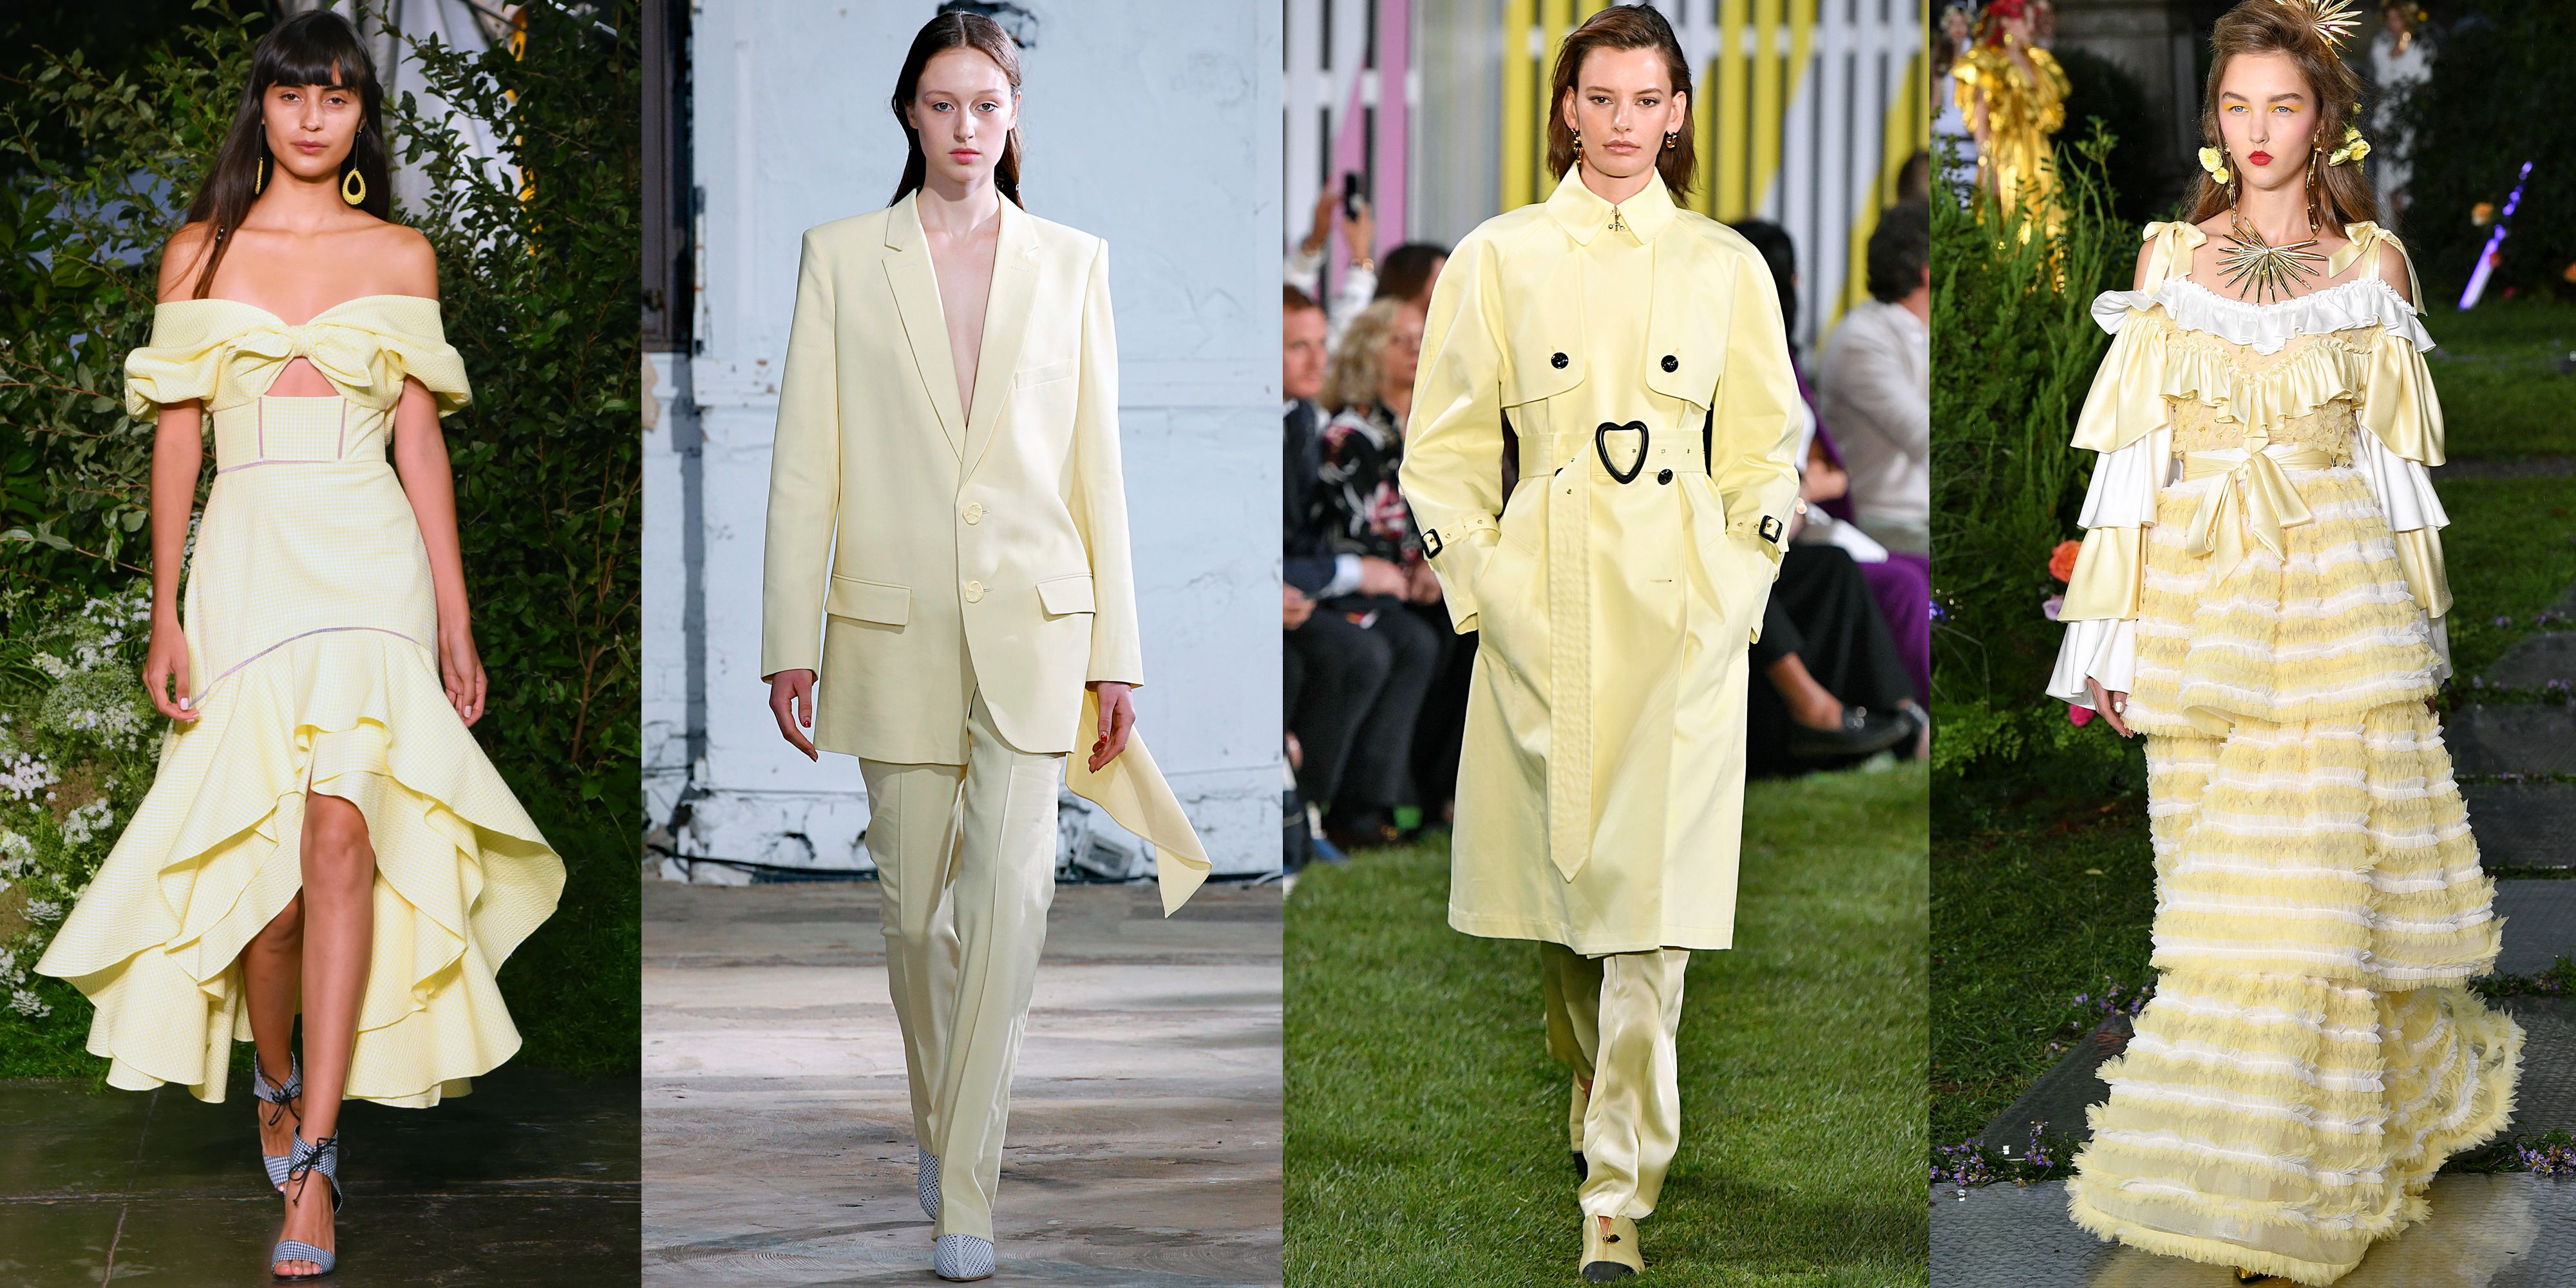 Egg-Yolk Yellow As seen at Jonathan Simkhai, Tibi, Escada, Rodarte Millennial pink and lavender had their moments, but the color of spring 2019 is egg-yolk yellow. The sunny pastel shade popped up all over the New York Fashion Week runways, batting away any rainy day blues guests might have felt.